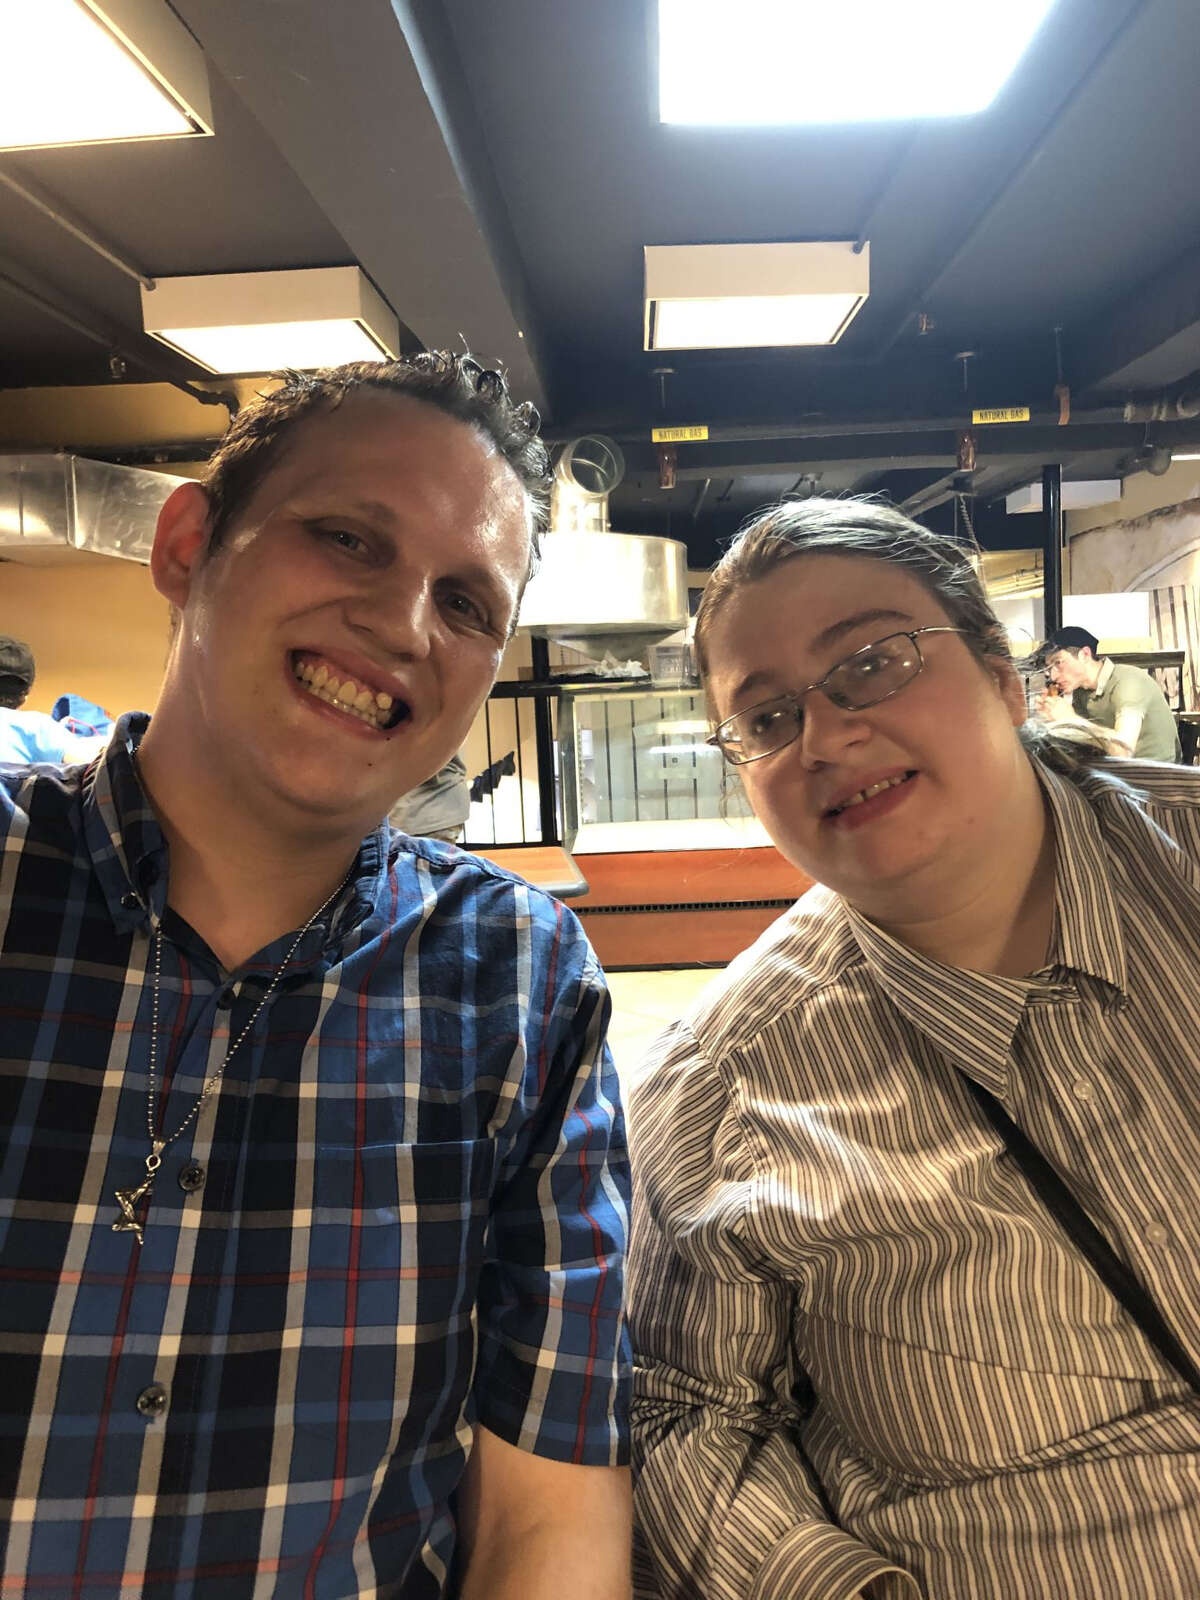 From left, Eli Finkelstein and Dina Wolf. The couple have disabilities and are seeking supportive housing together so they can wed. (Photo courtesy of Ruth Finkelstein)